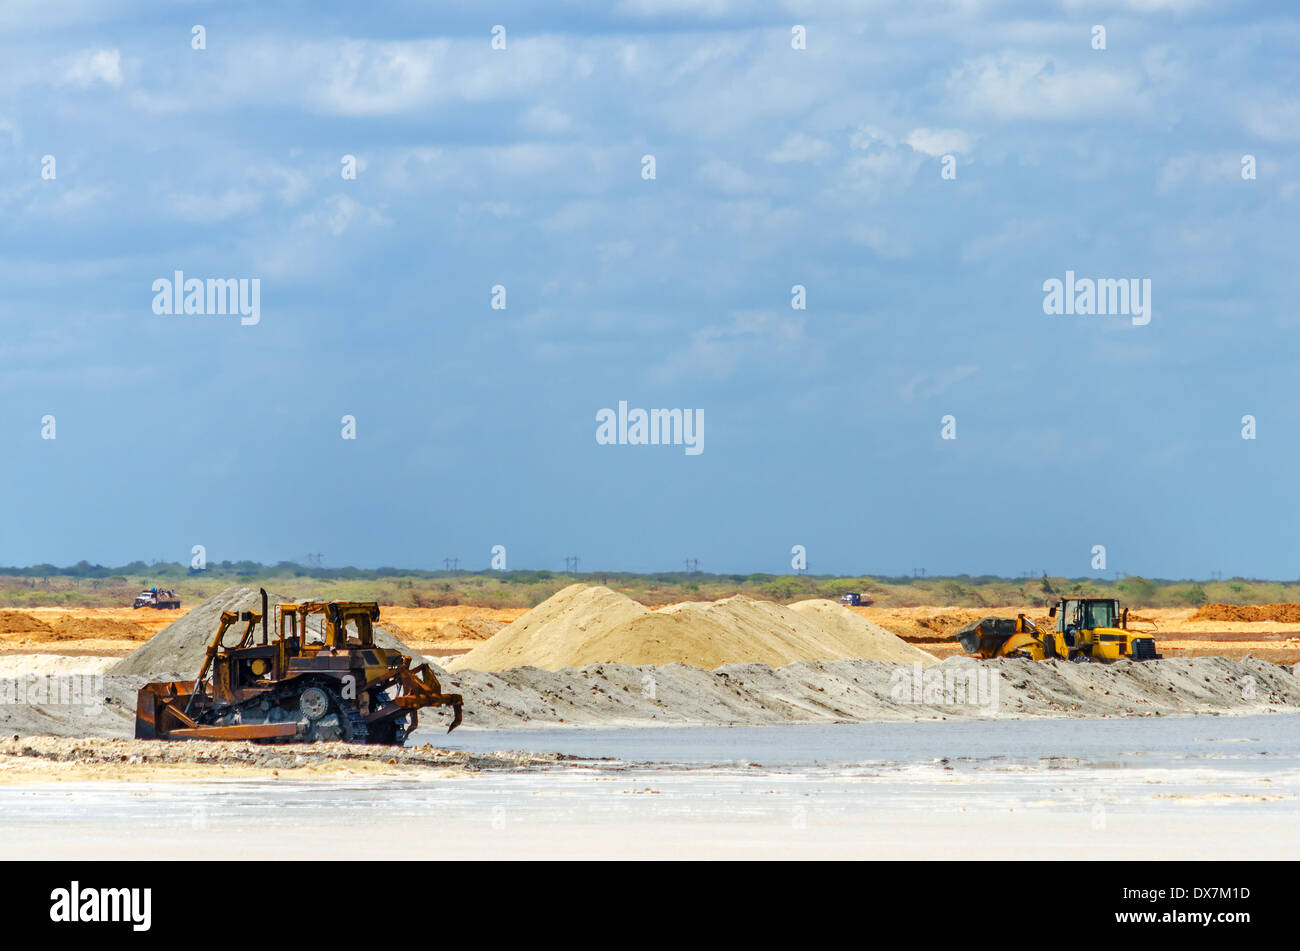 Heavy machinery gathering salt in Manaure in La Guajira, Colombia - Stock Image